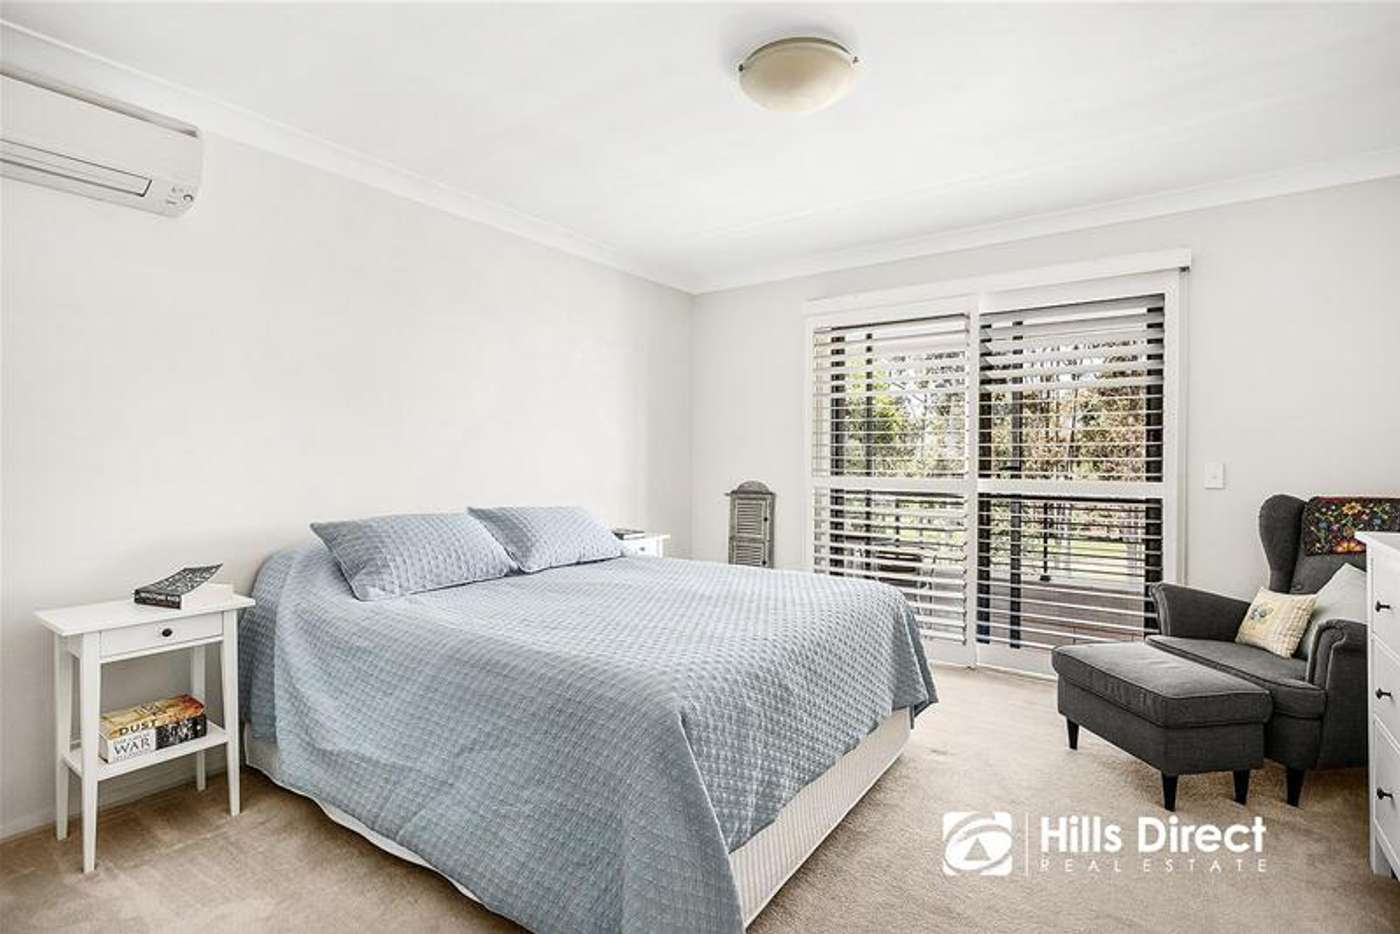 Sixth view of Homely house listing, 23 Islington Road, Stanhope Gardens NSW 2768